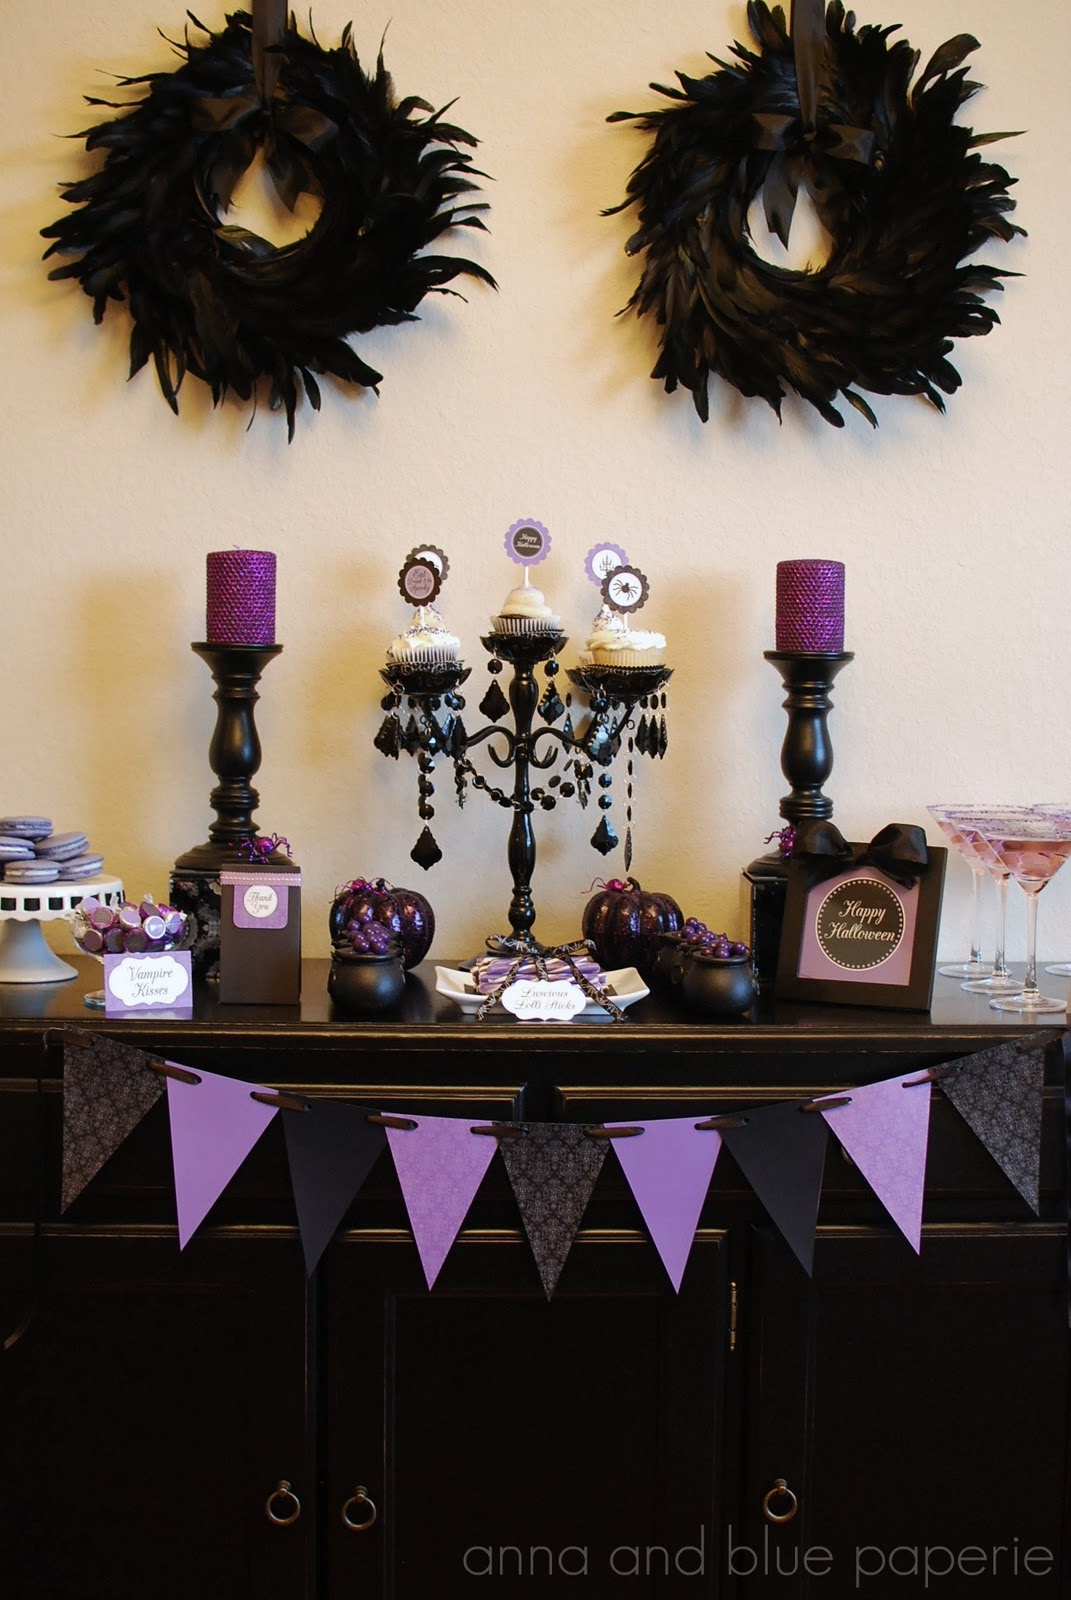 60 easy halloween crafts best diy halloween craft ideas for your home - Halloween Decorations For A Party